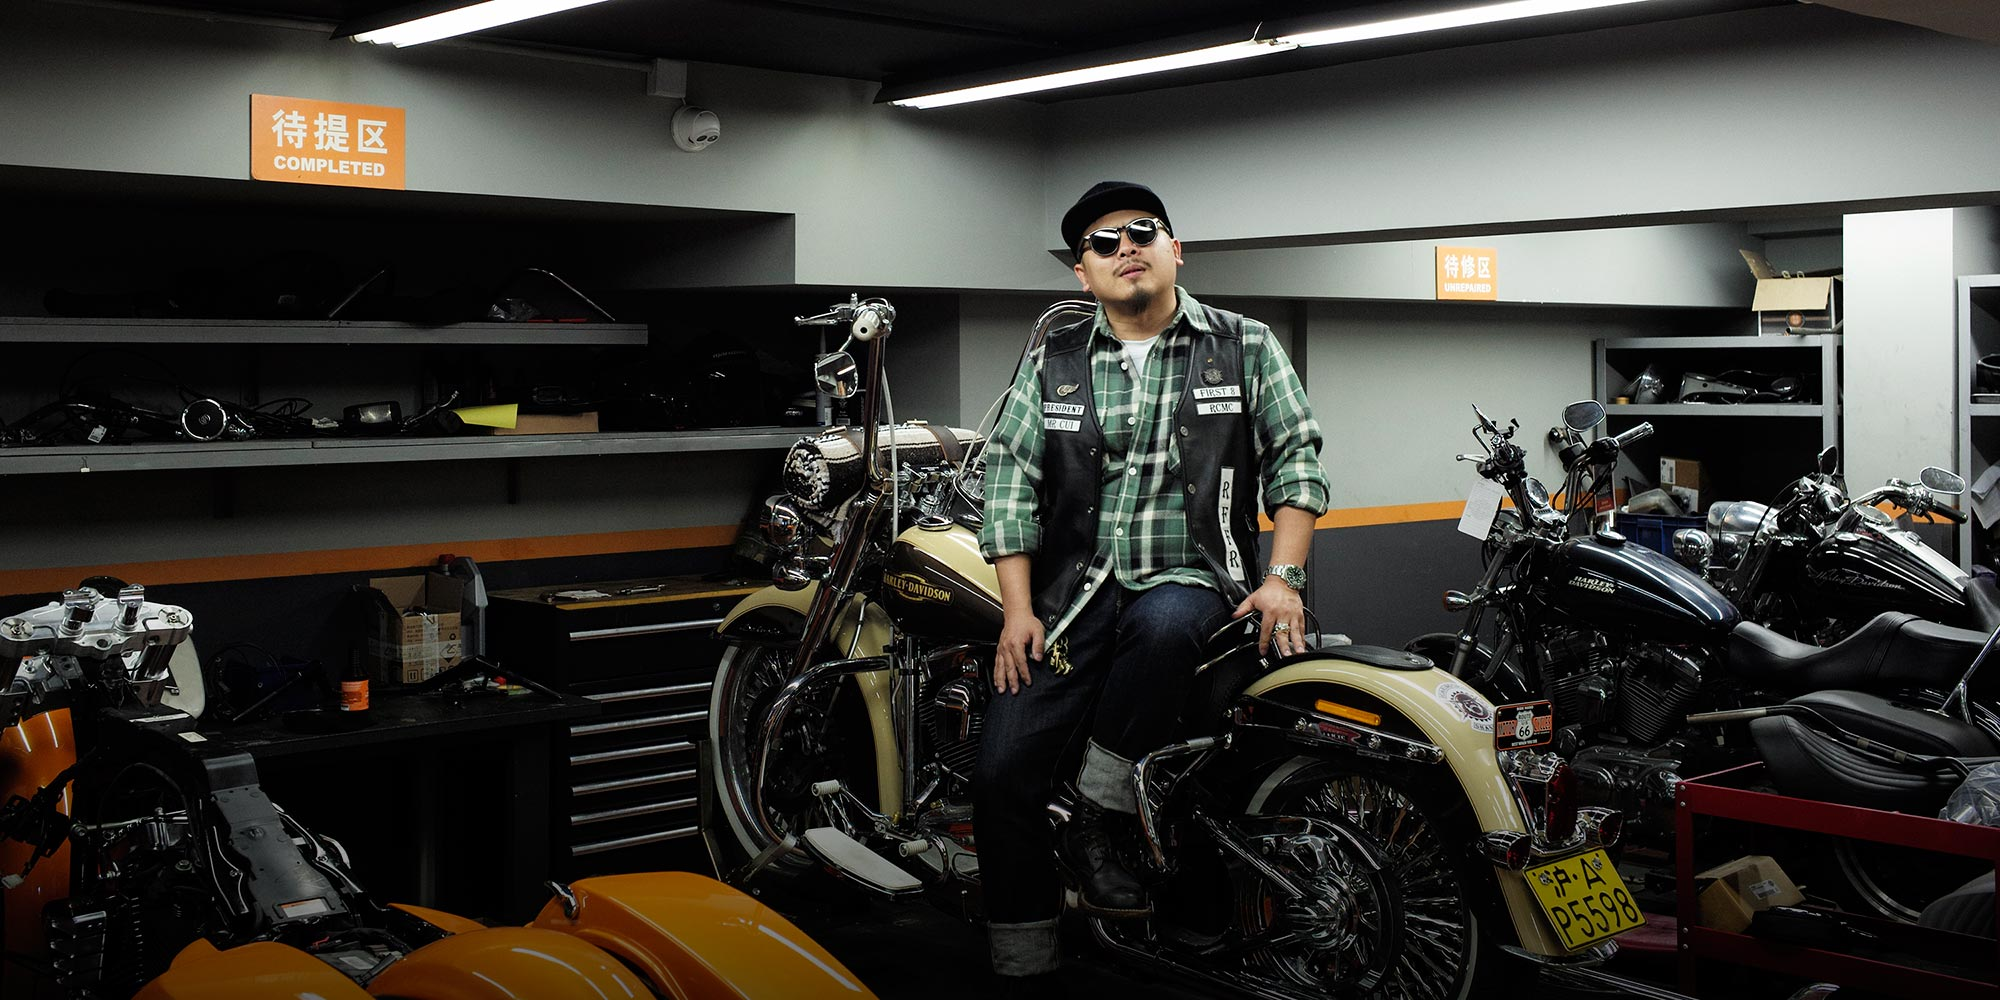 Born to Be Tamed: The Biker Gangs Revving on China's Roads